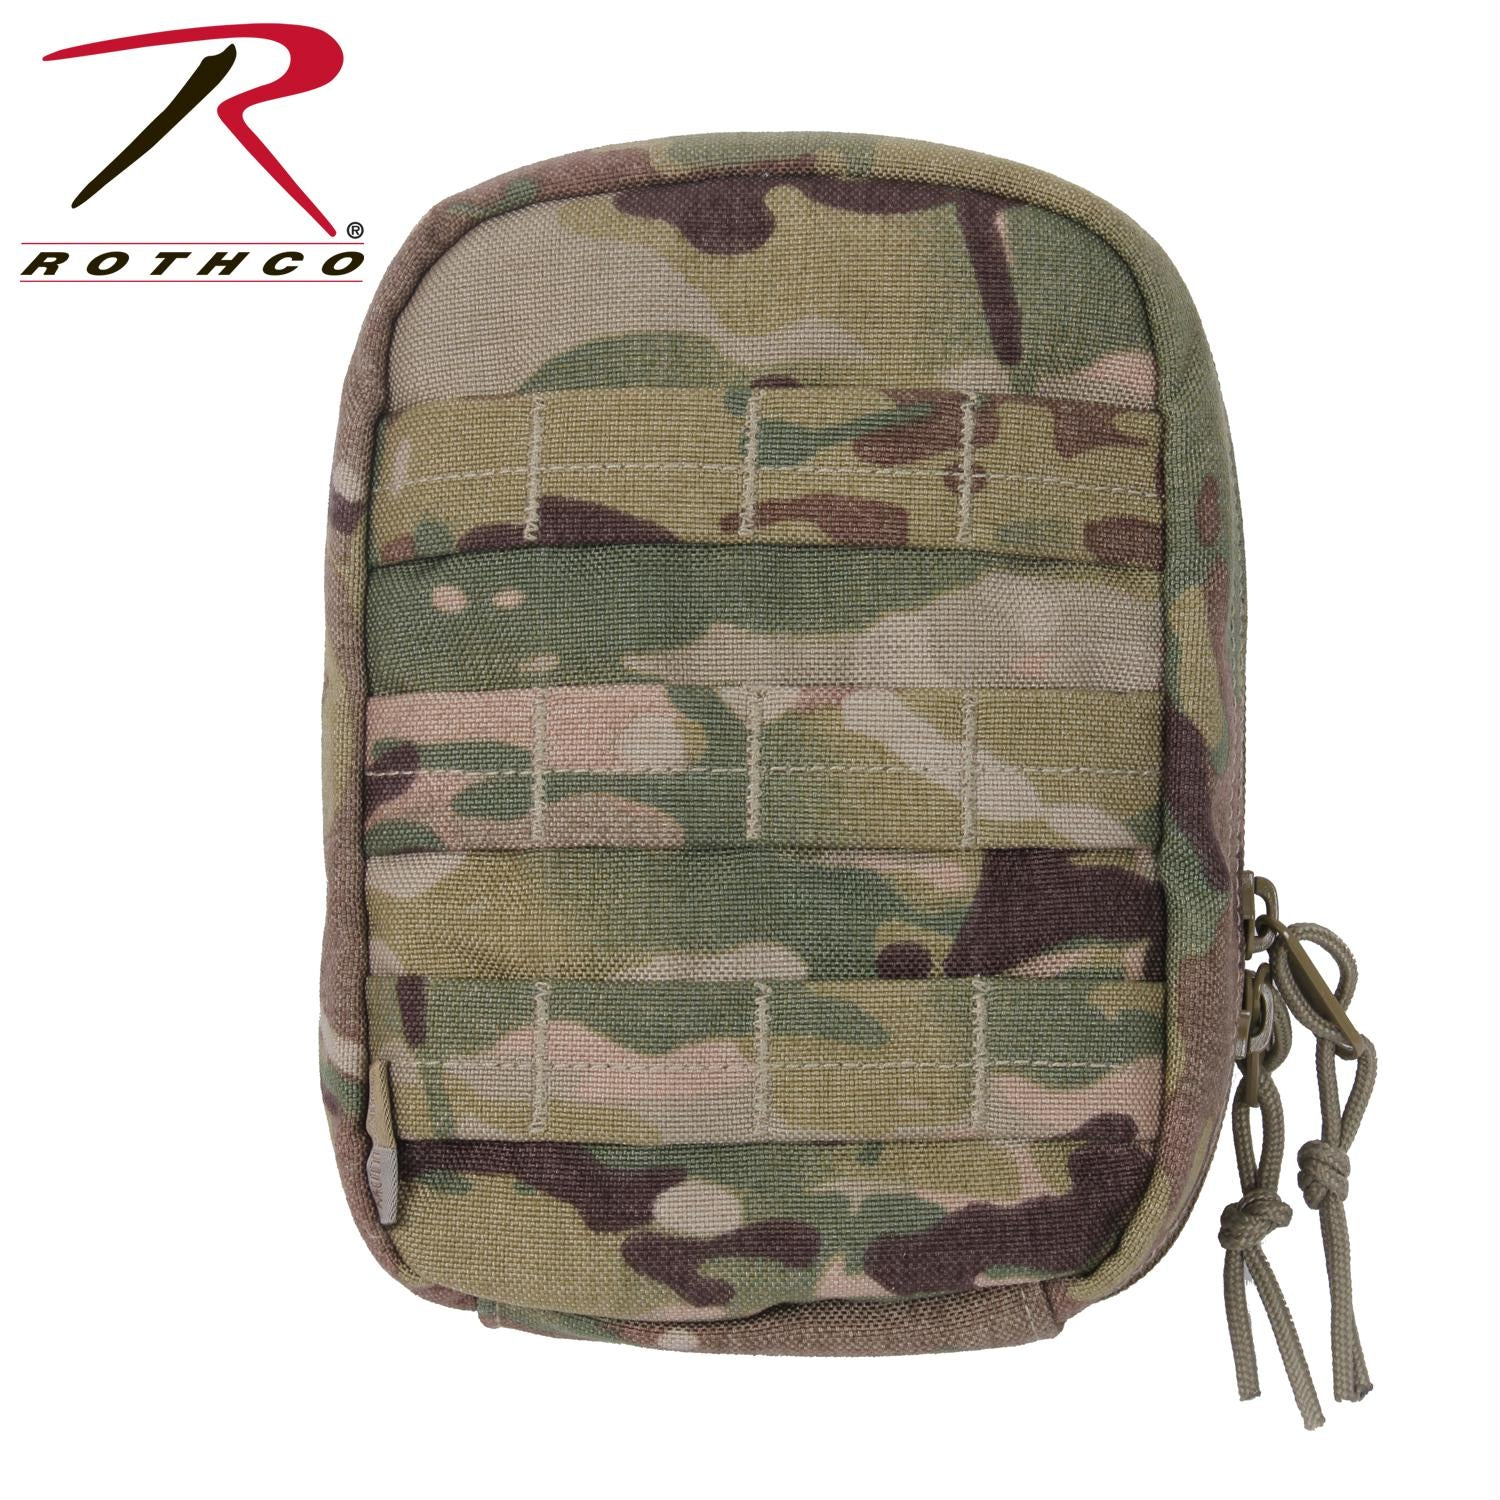 Rothco MOLLE Tactical First Aid Kit - MultiCam